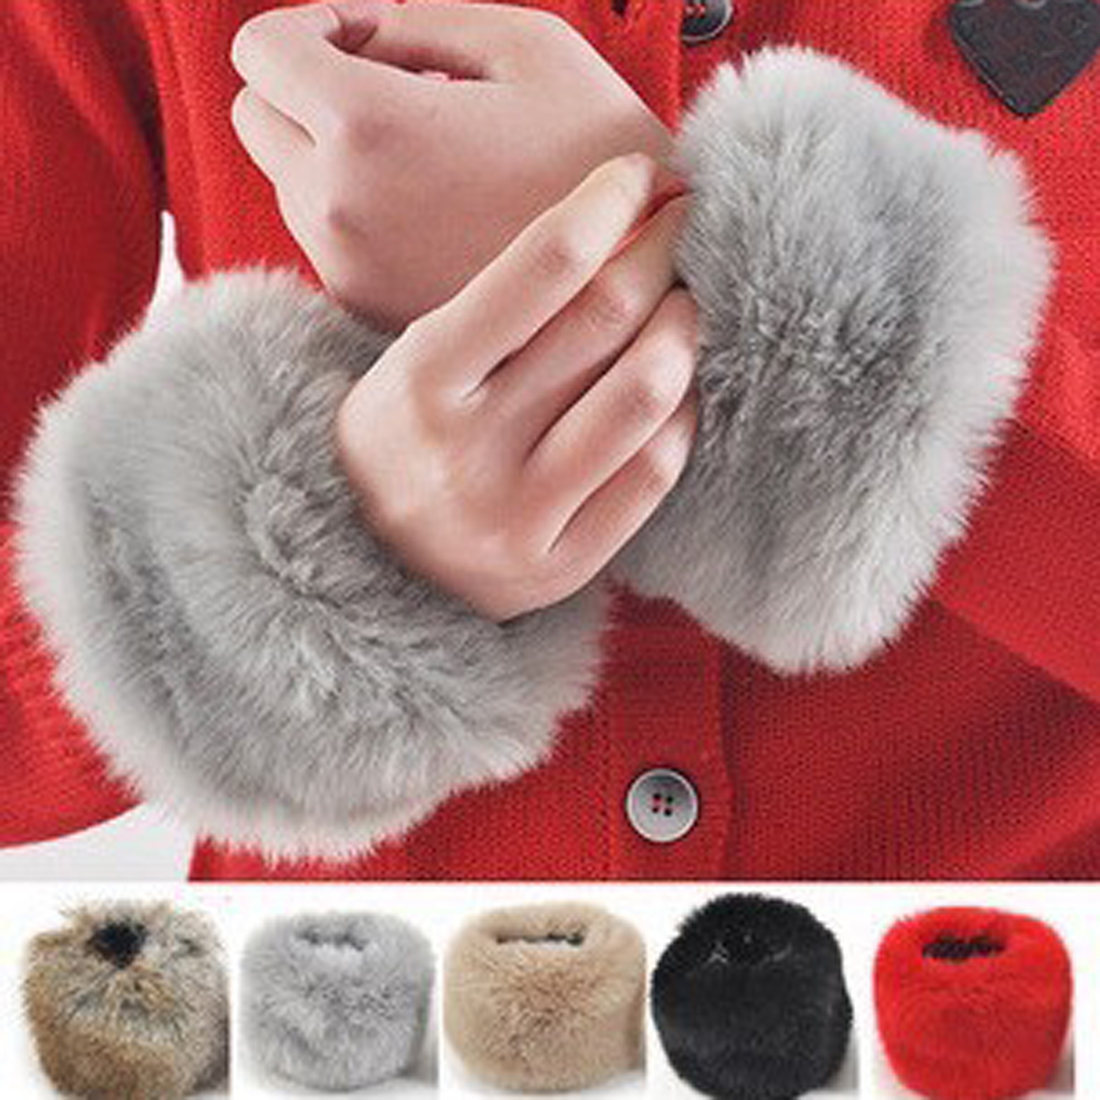 Fashion Winter Warm Women Faux Fur Elastic  Gloves Wrist  ProtectorArms Warmer Slap On Cuffs Warmer Plush Windproof  Elastic